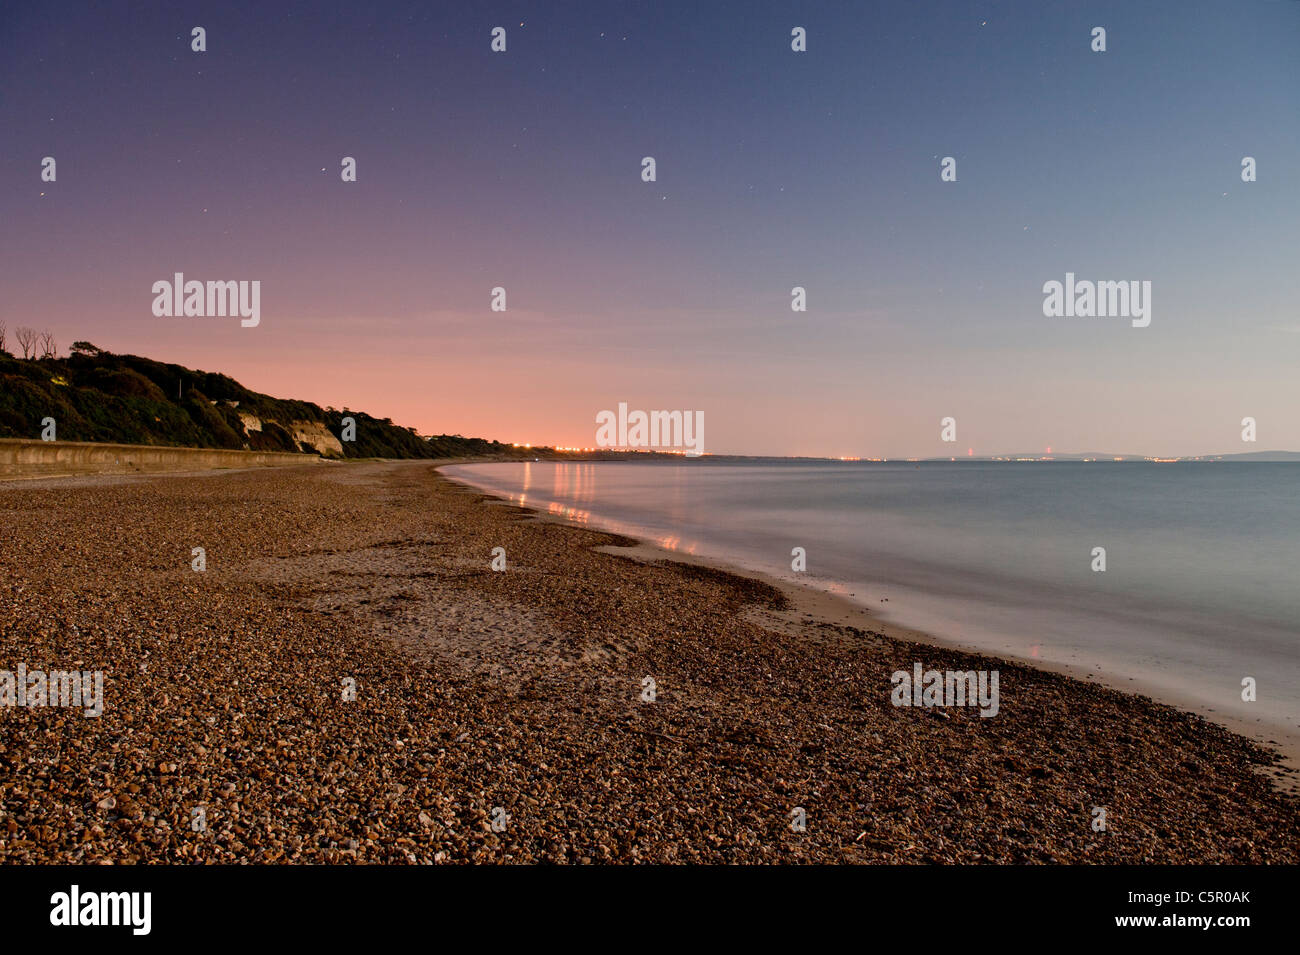 Distant lights reflect off a still night sea by a pebble beach near to Highcliffe, Dorset. - Stock Image